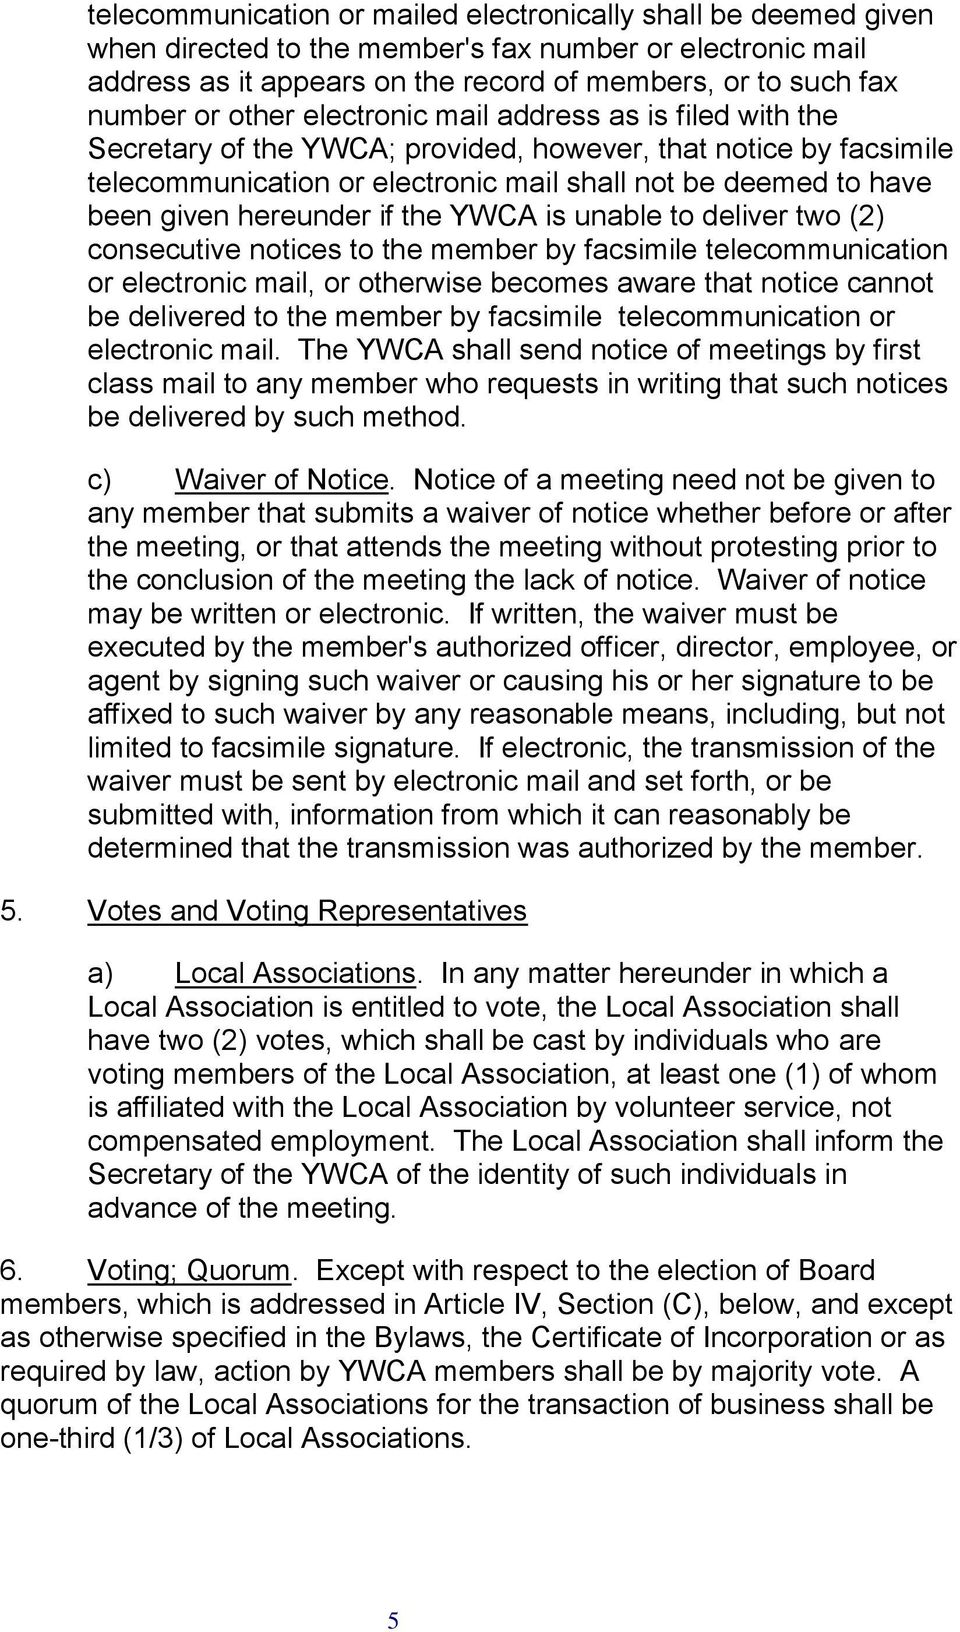 hereunder if the YWCA is unable to deliver two (2) consecutive notices to the member by facsimile telecommunication or electronic mail, or otherwise becomes aware that notice cannot be delivered to